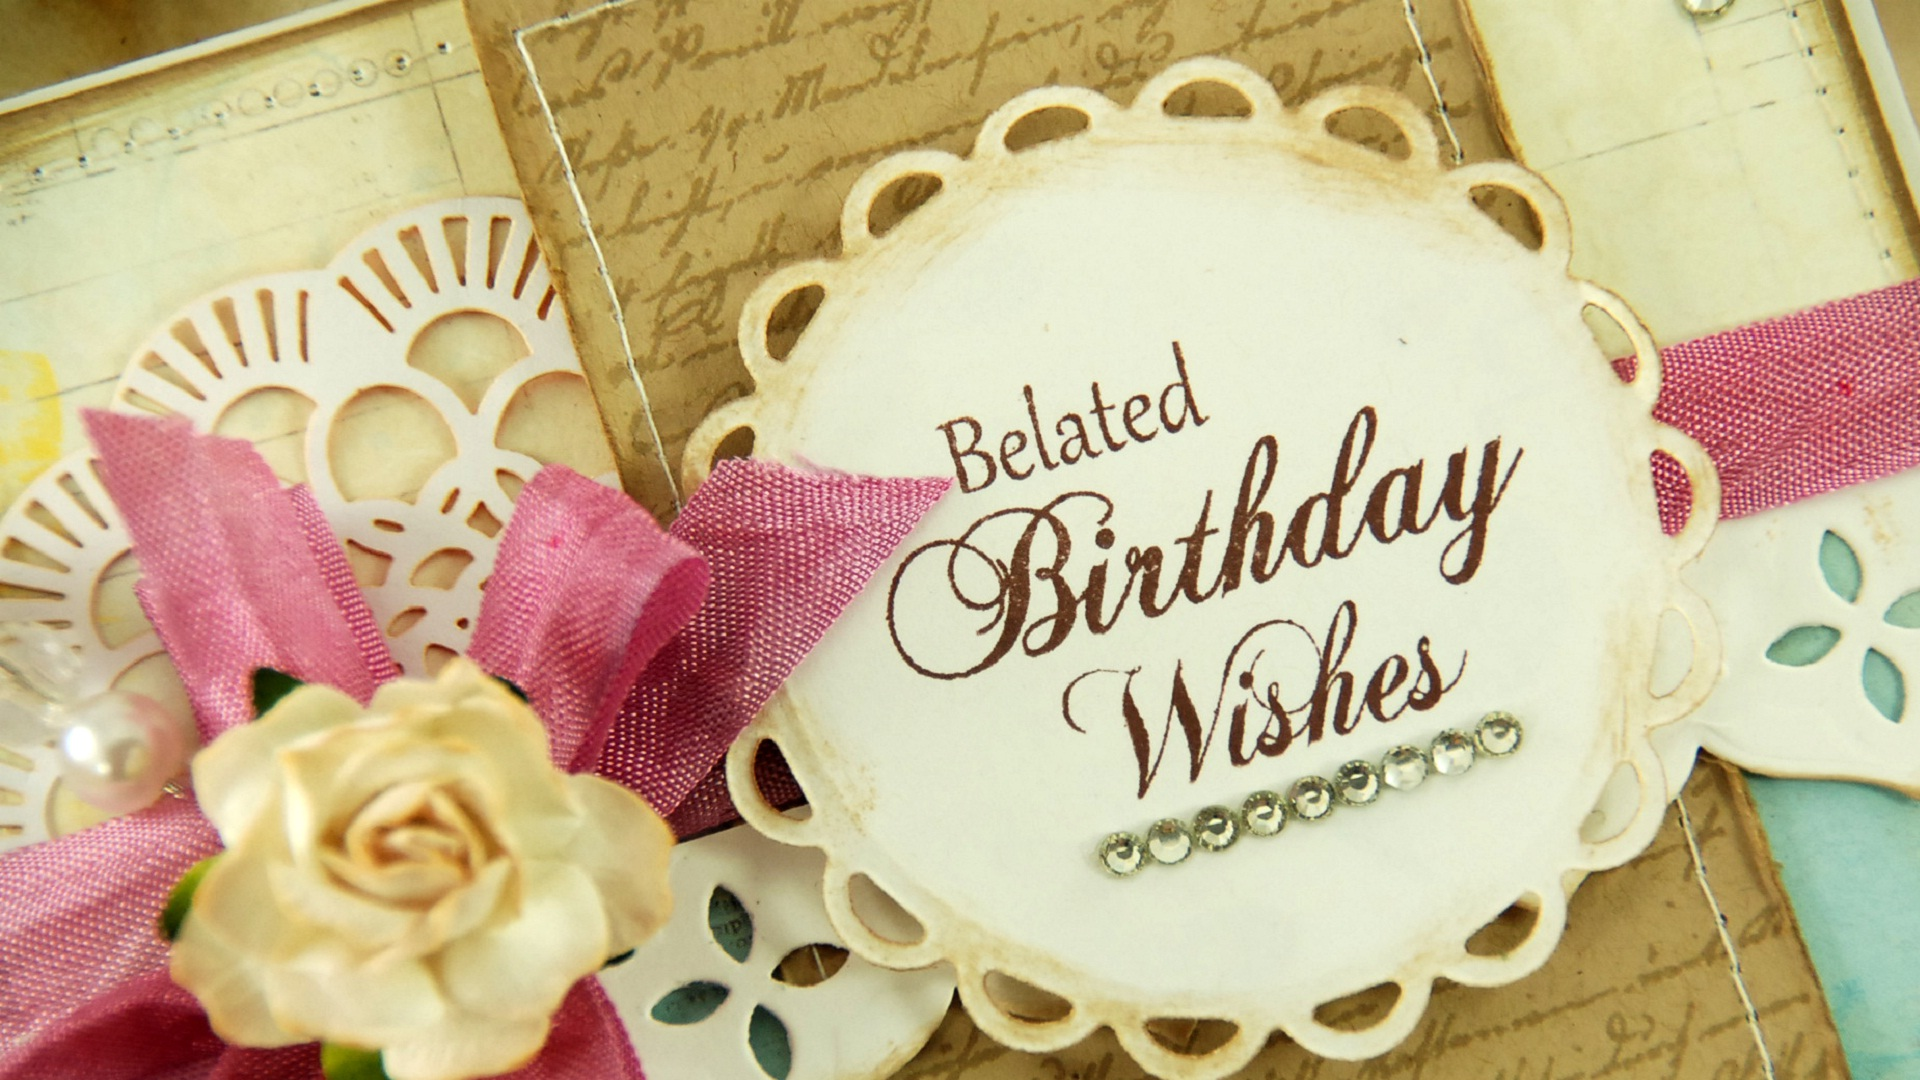 birthday wishes pics hd ; Birthday-wishes-marvelous-gift-and-good-desires